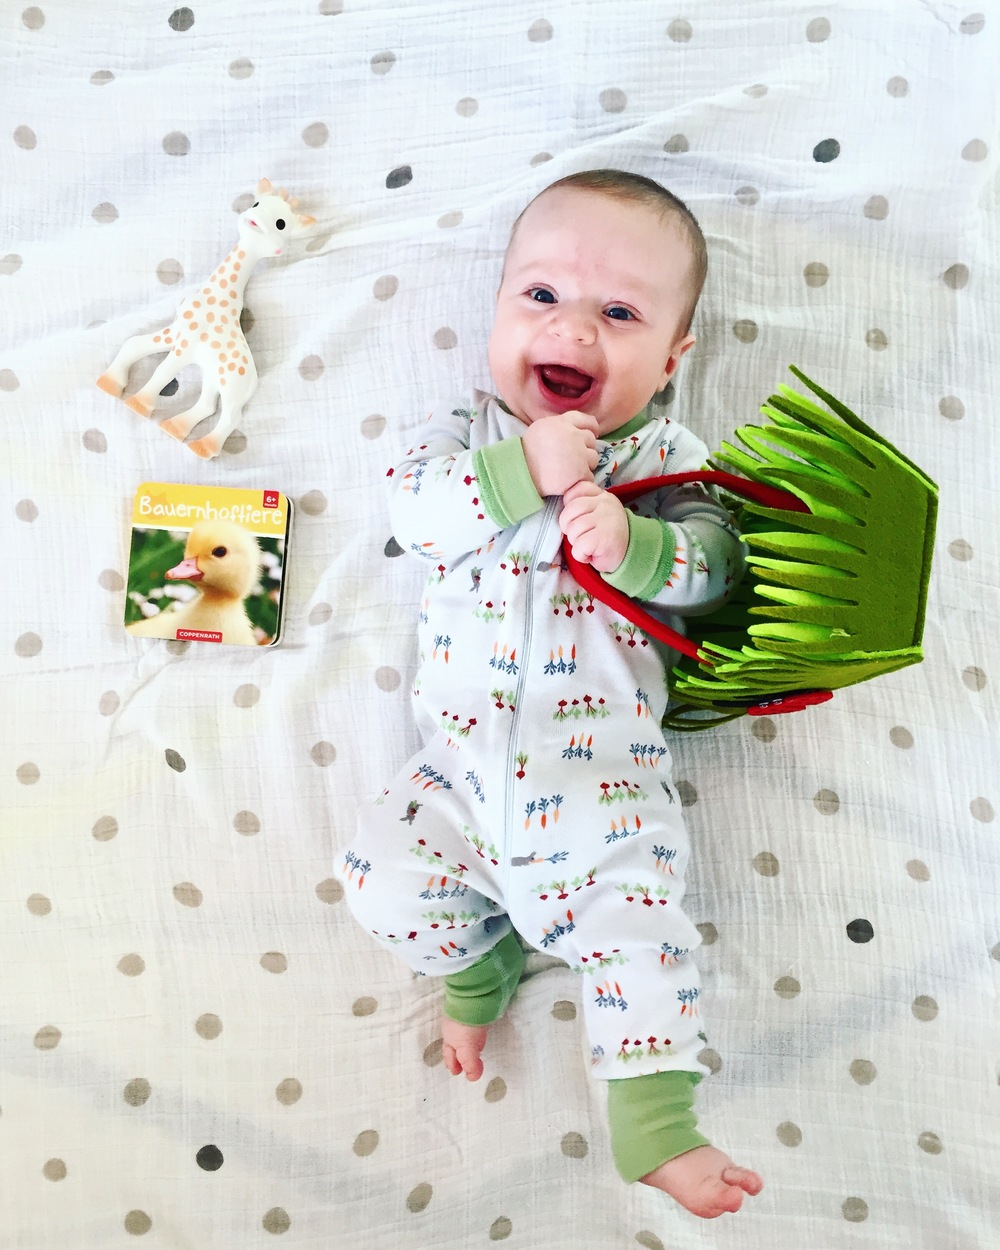 The Easter bunny brought Miles a Sophie la Girafe teething toy and his first German books, and Mommy and Daddy hosted a yummy brunch for friends!